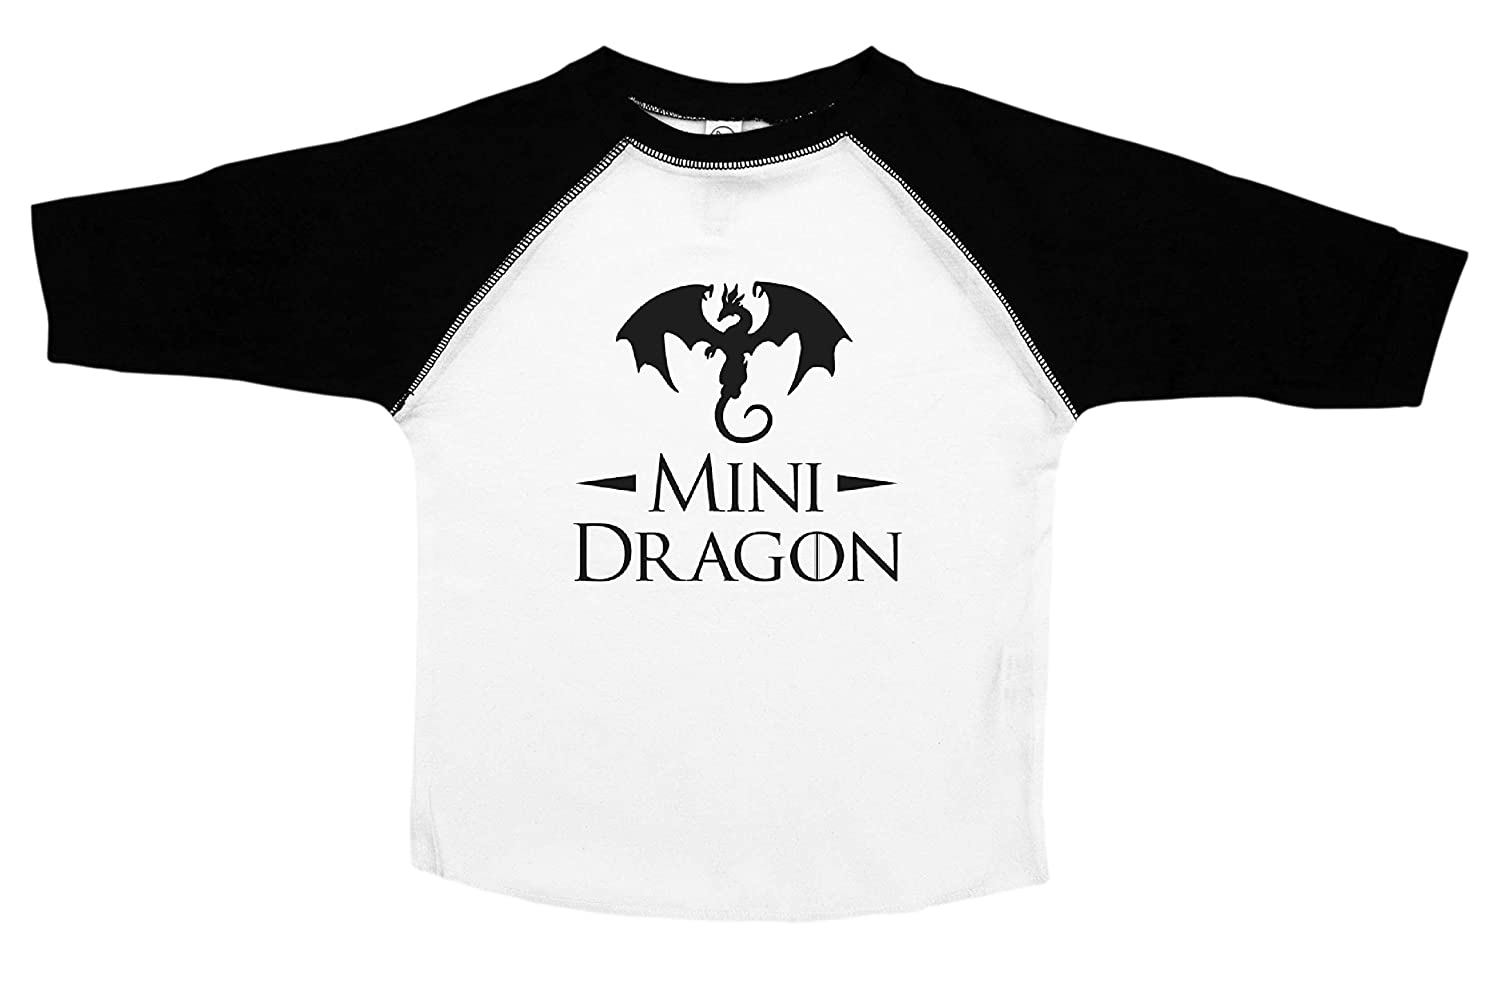 4dadd1bc6f Amazon.com: Mini Dragon / Game of Thrones / Funny Toddler Shirts / Kids  Baseball Tee: Clothing